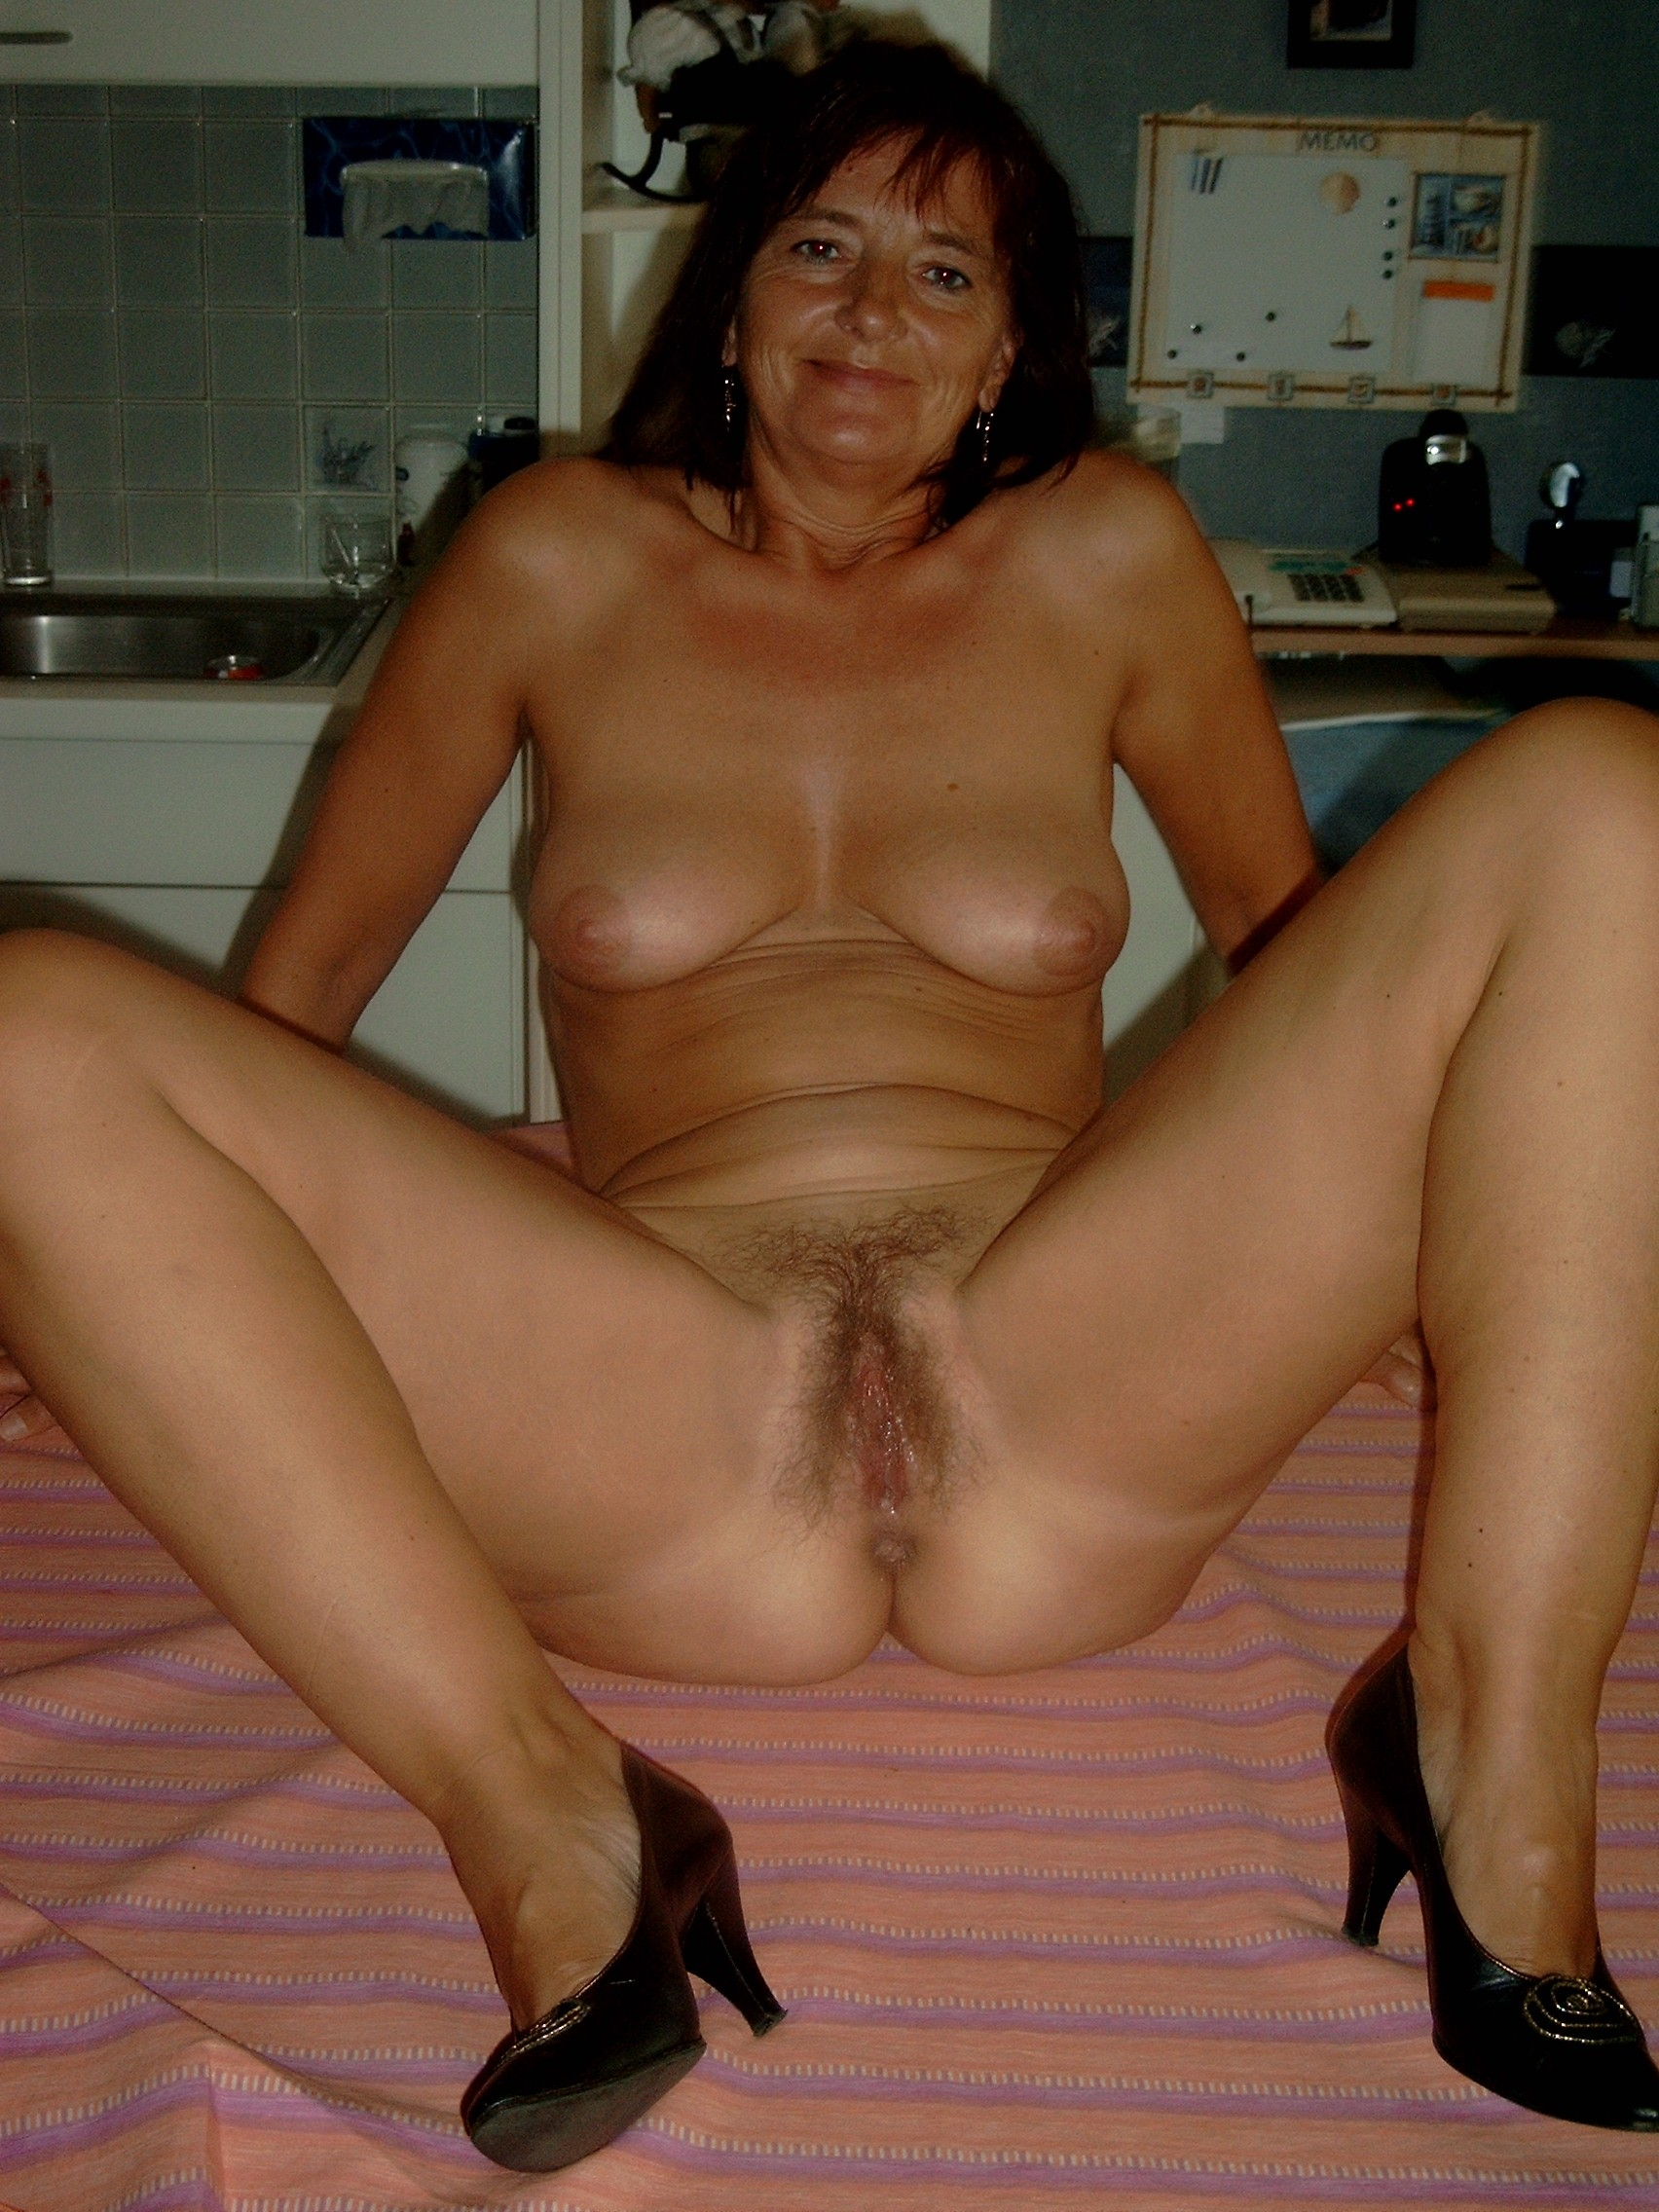 Old whore standing naked really. happens